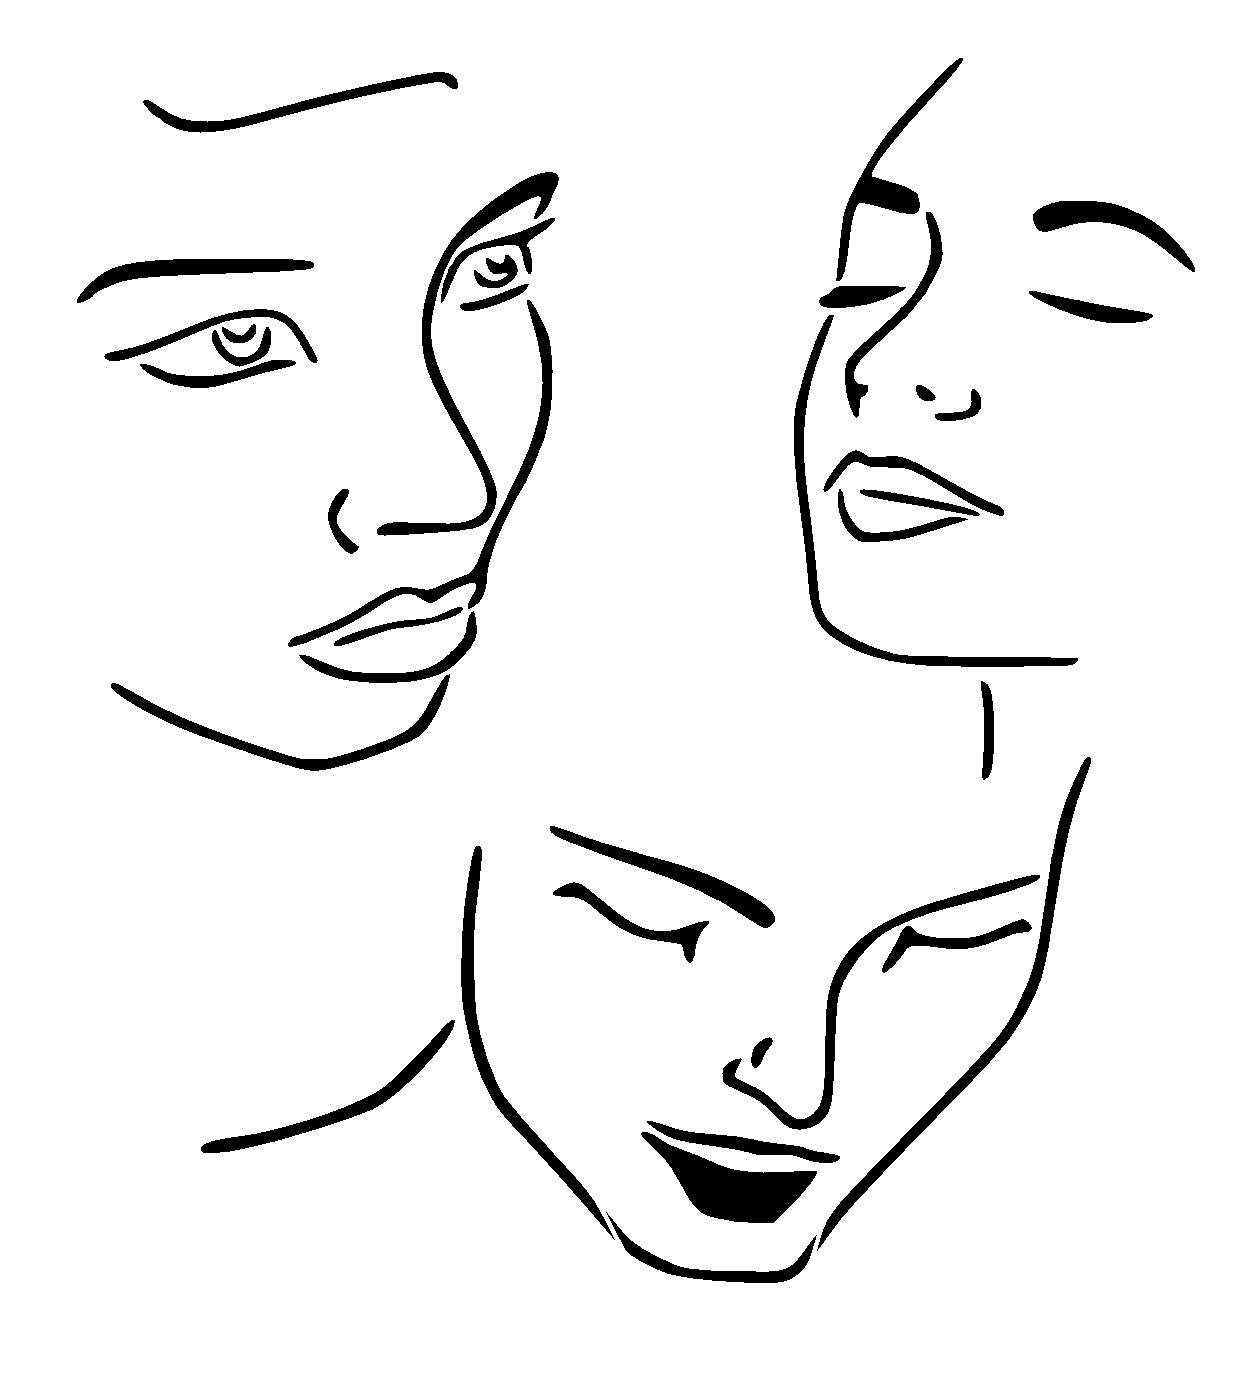 faces drawing aid stencil 2. Choose size and thickness.